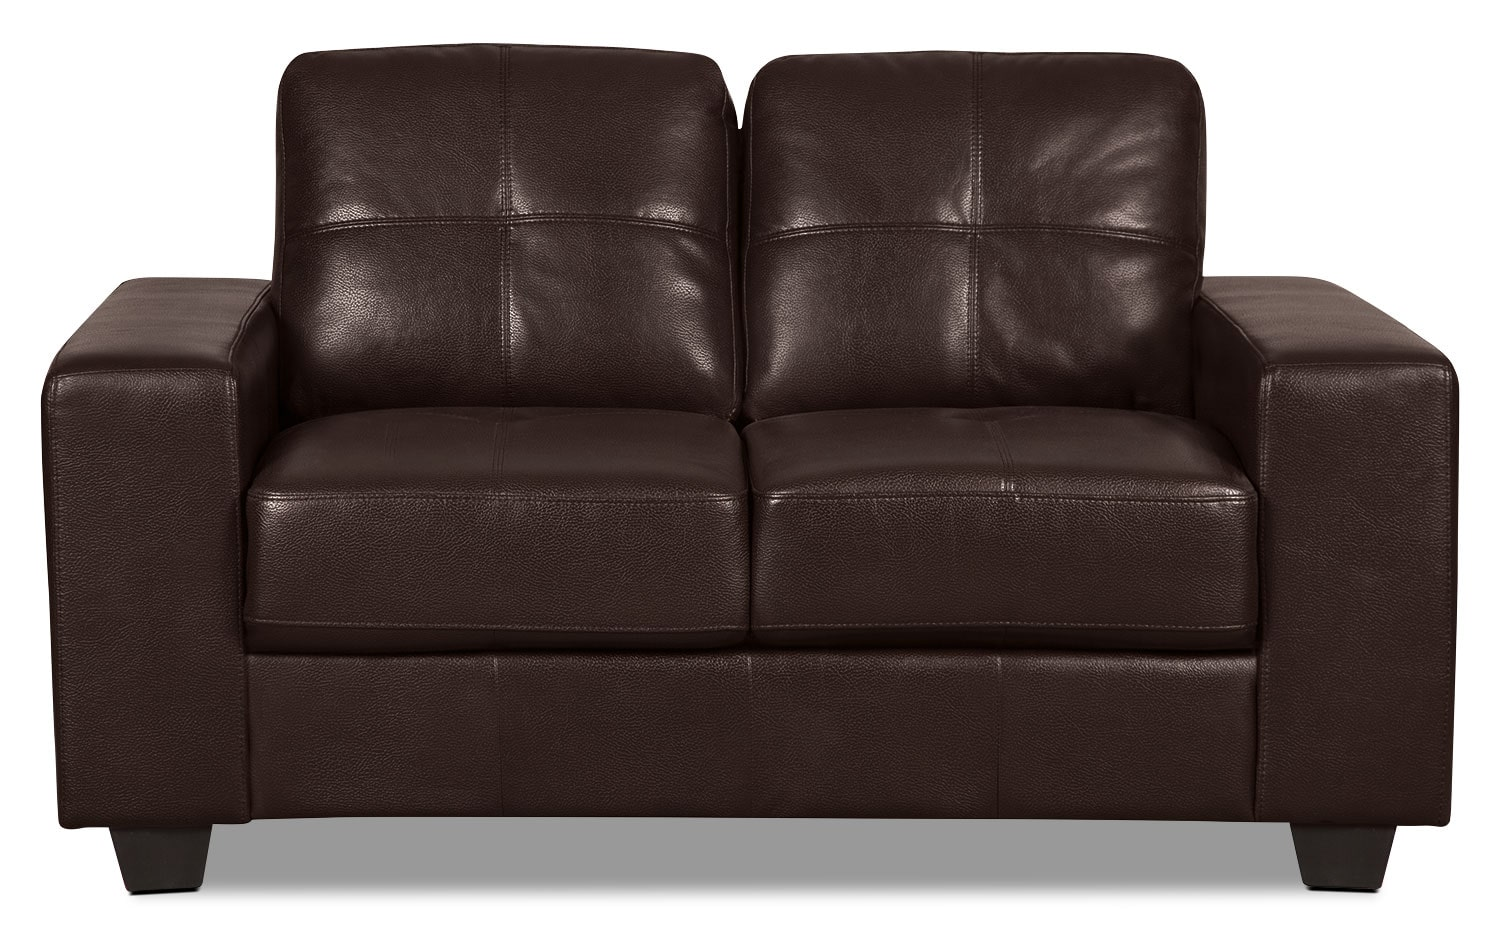 Costa Leather-Look Fabric Loveseat – Brown